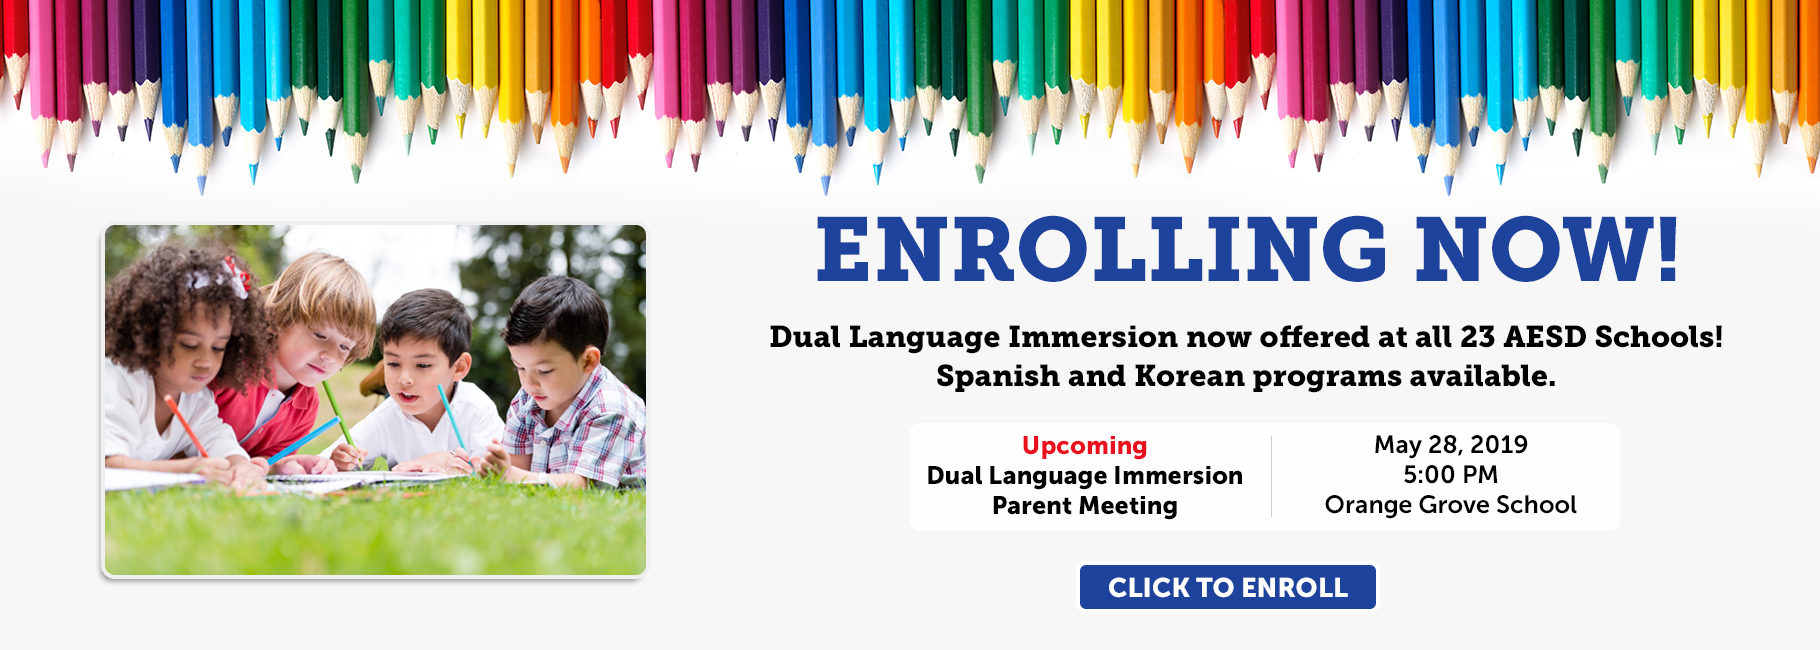 Dual Language Immersion now offered at all 23 AESD Schools!  Spanish and Korean programs available. Upcoming Dual Language Immersion  Parent Meeting May 28, 2019 at 5:00 PM at at  Orange Grove Elementary School.